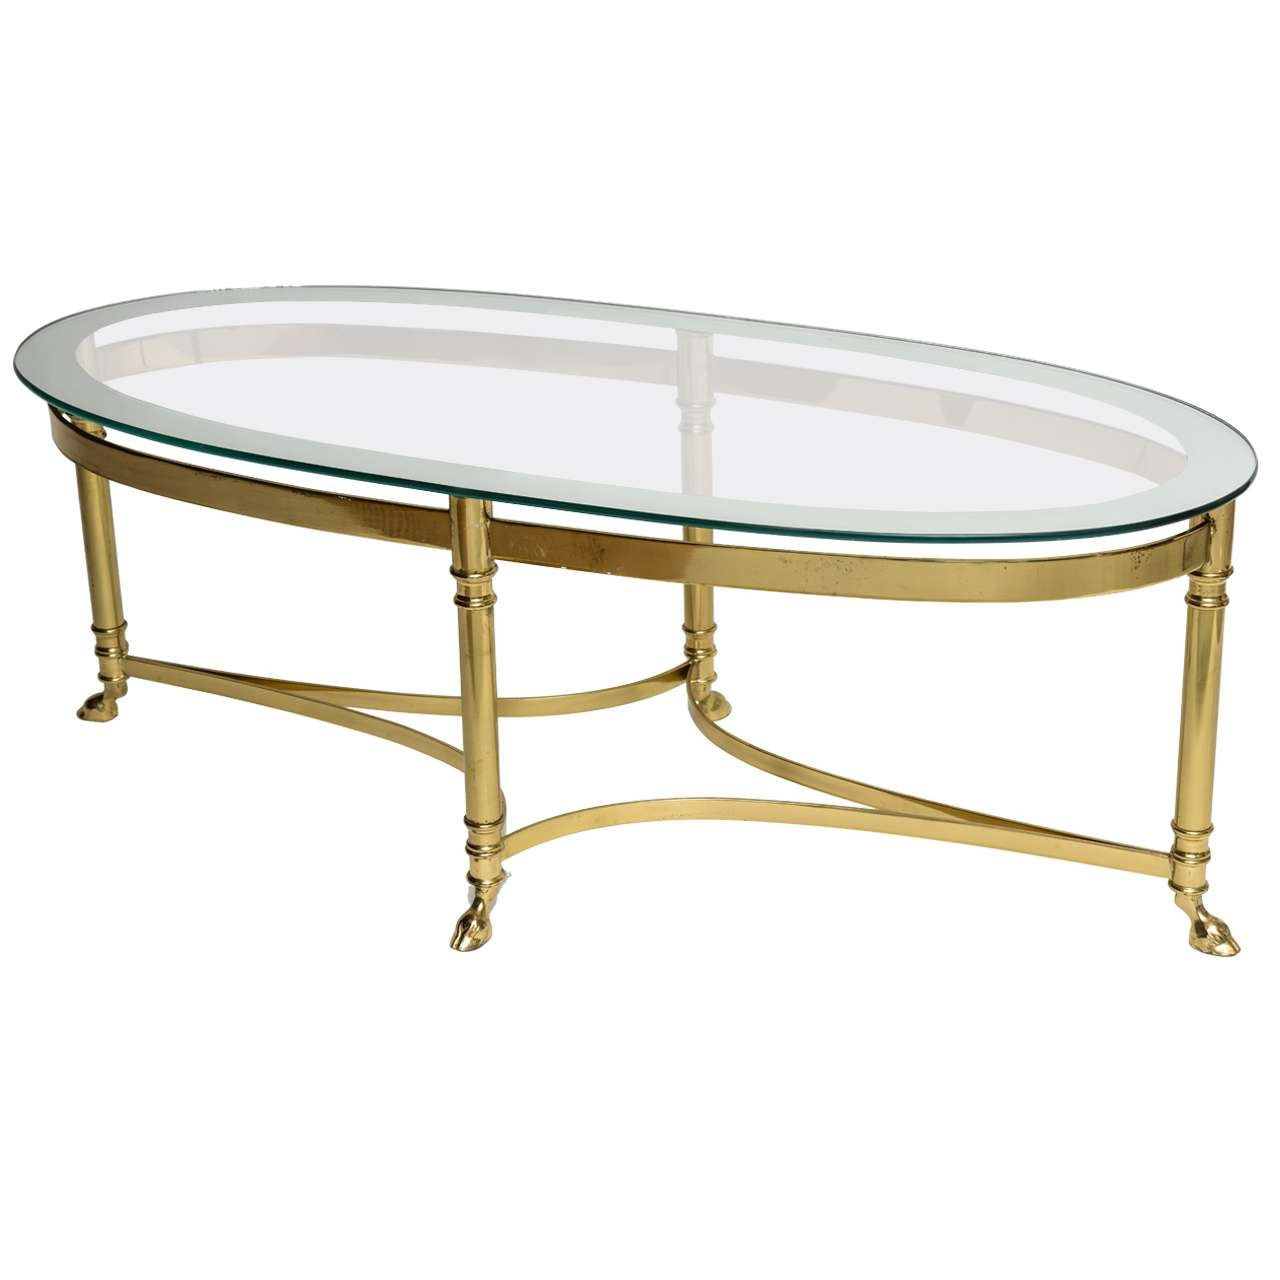 Brass And Glass Coffee Table – Writehookstudio With Best And Newest Antique Brass Glass Coffee Tables (View 7 of 20)